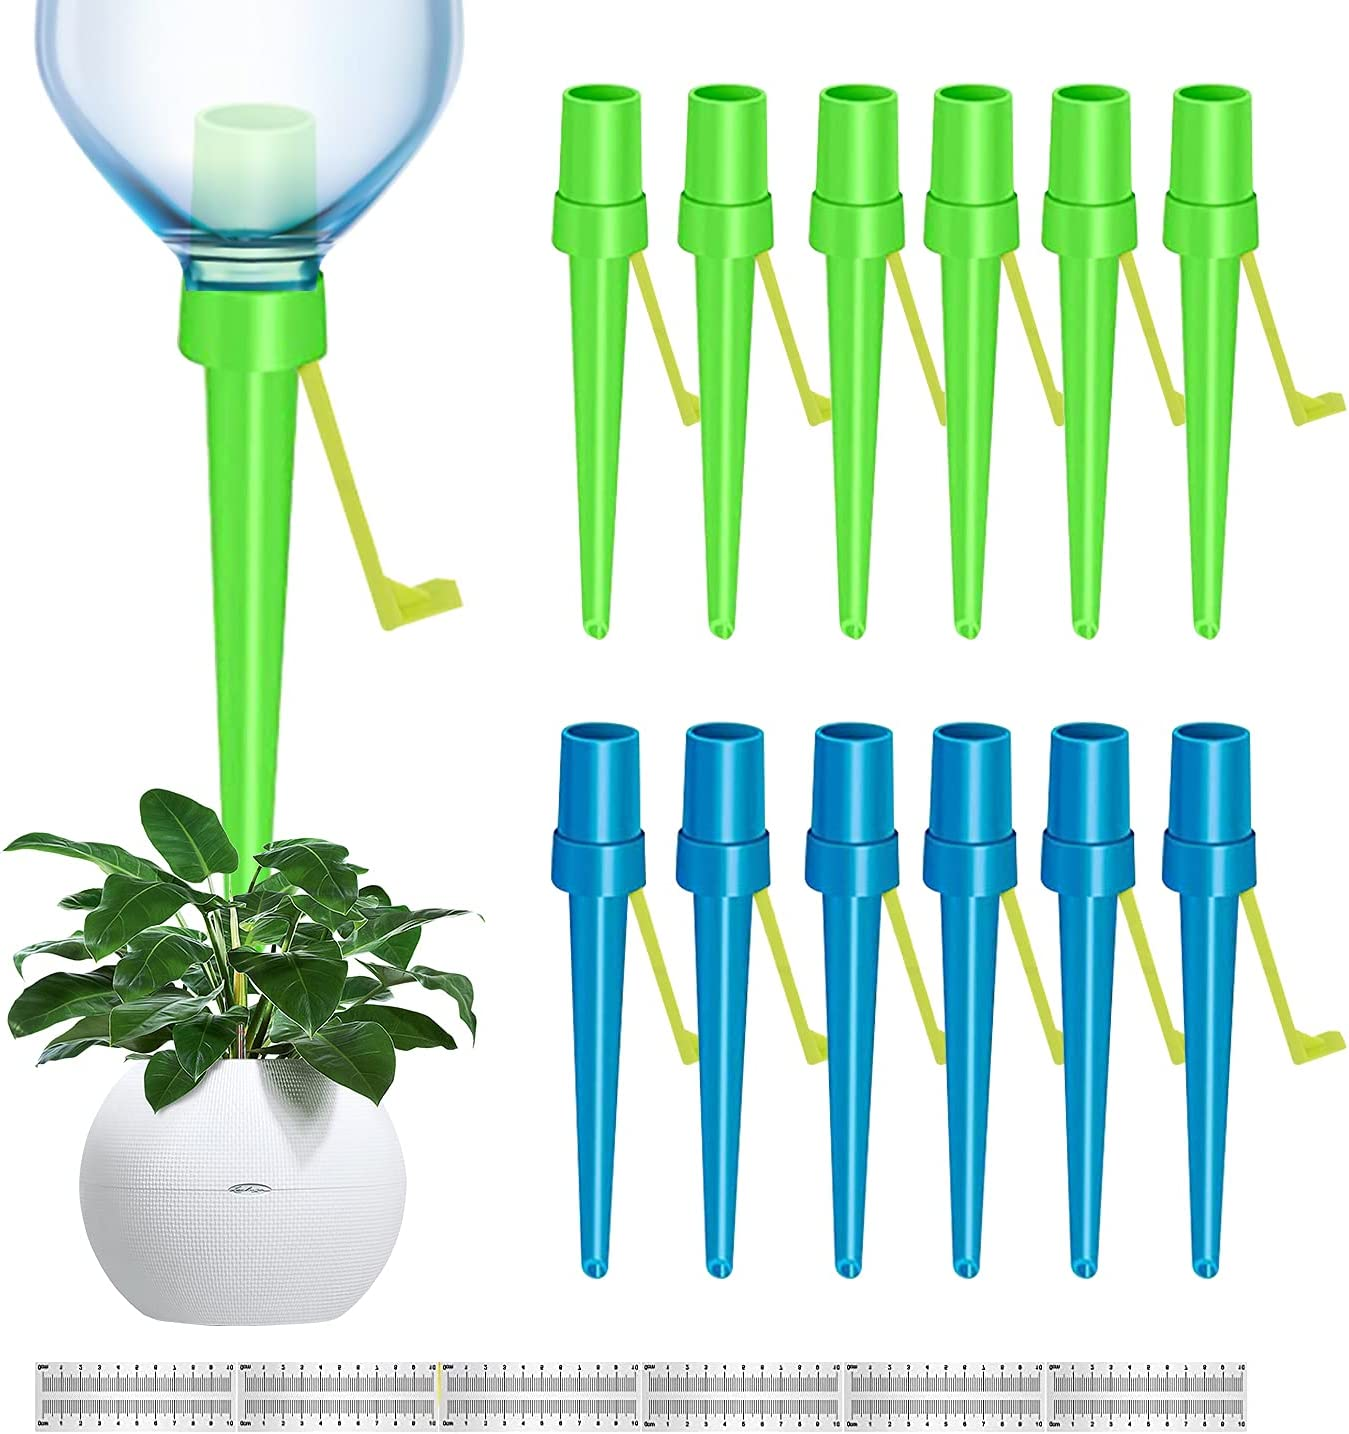 【New】Plant Self Watering Charlotte Mall Spikes Inexpensive Universal 12PCS